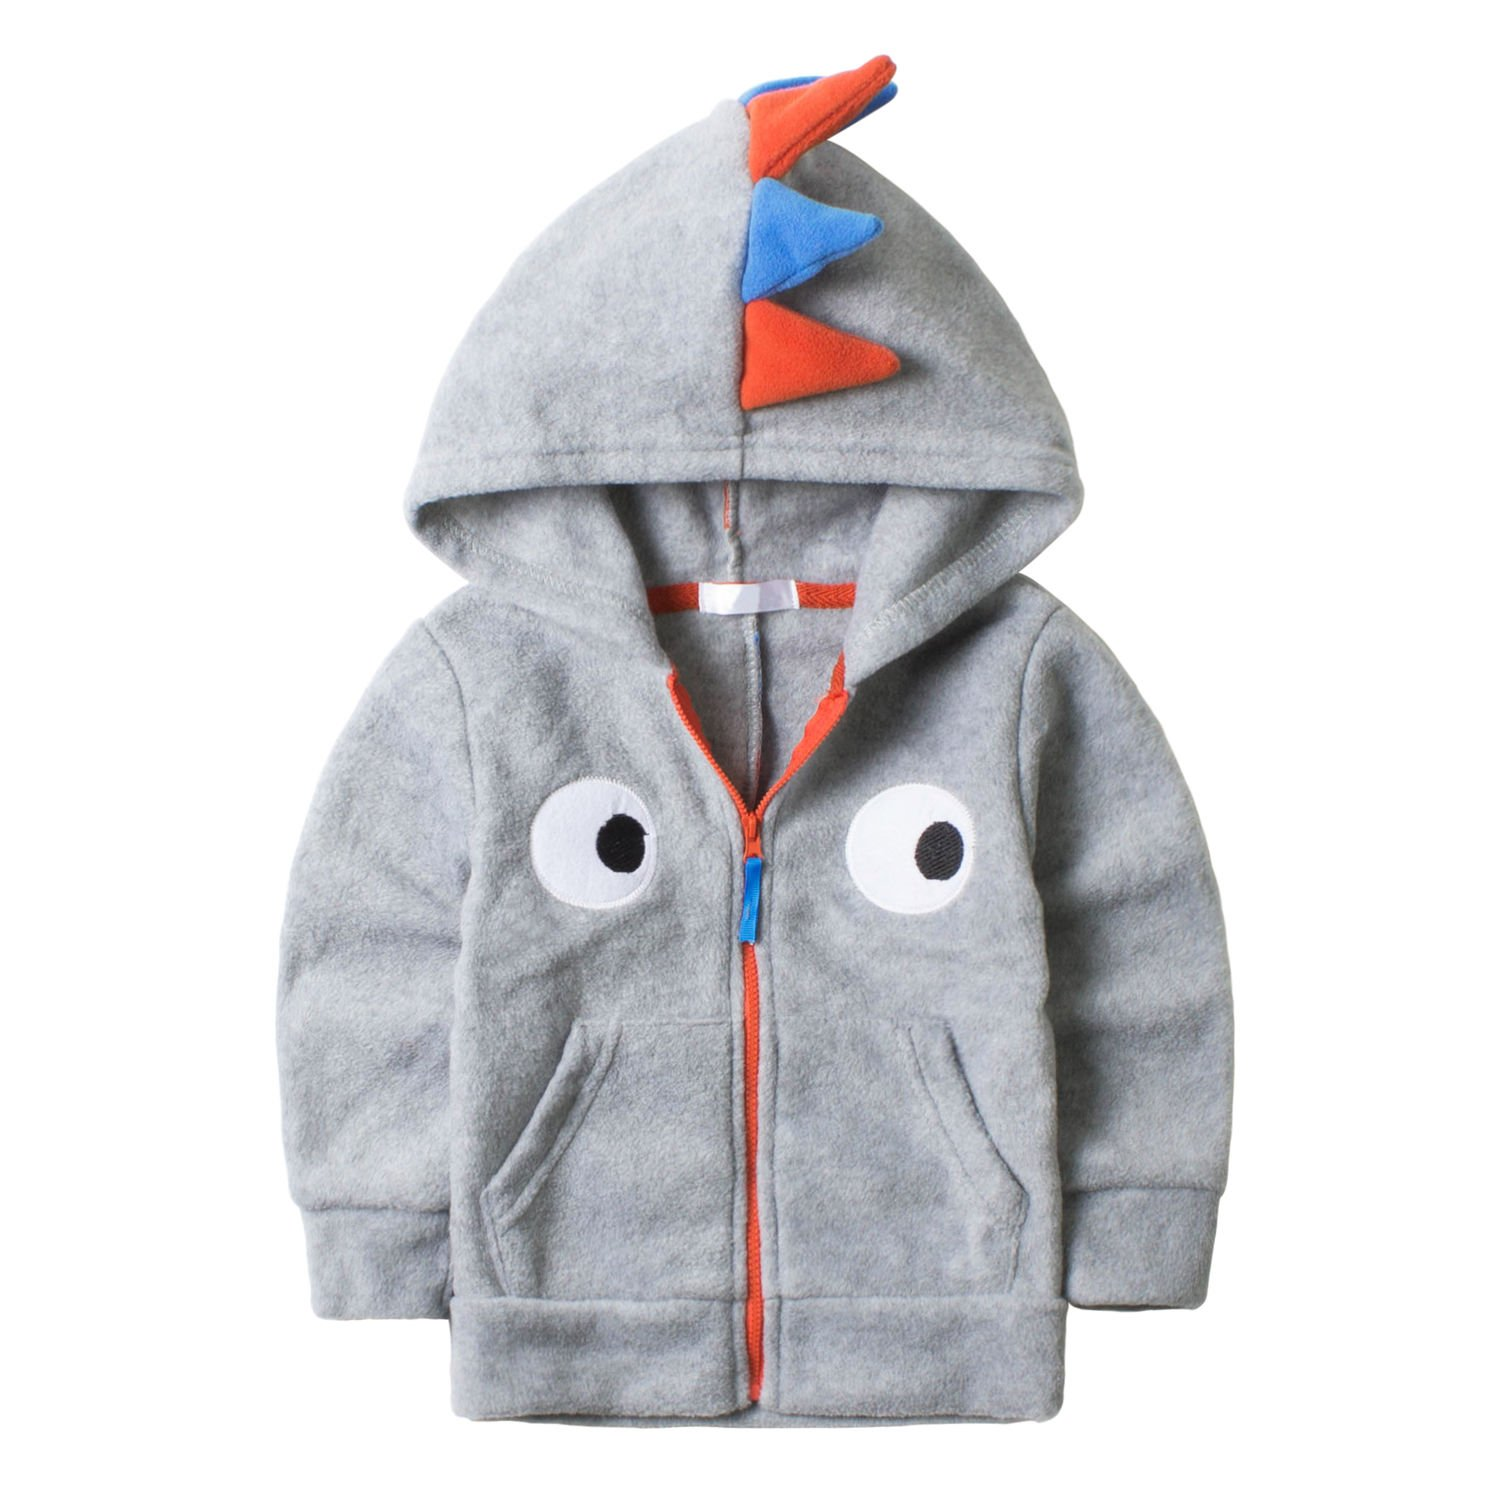 Baby Boys Dinosaur Fleece Hoodies Clothes Toddler Zip-up Light Jacket Sweatshirt